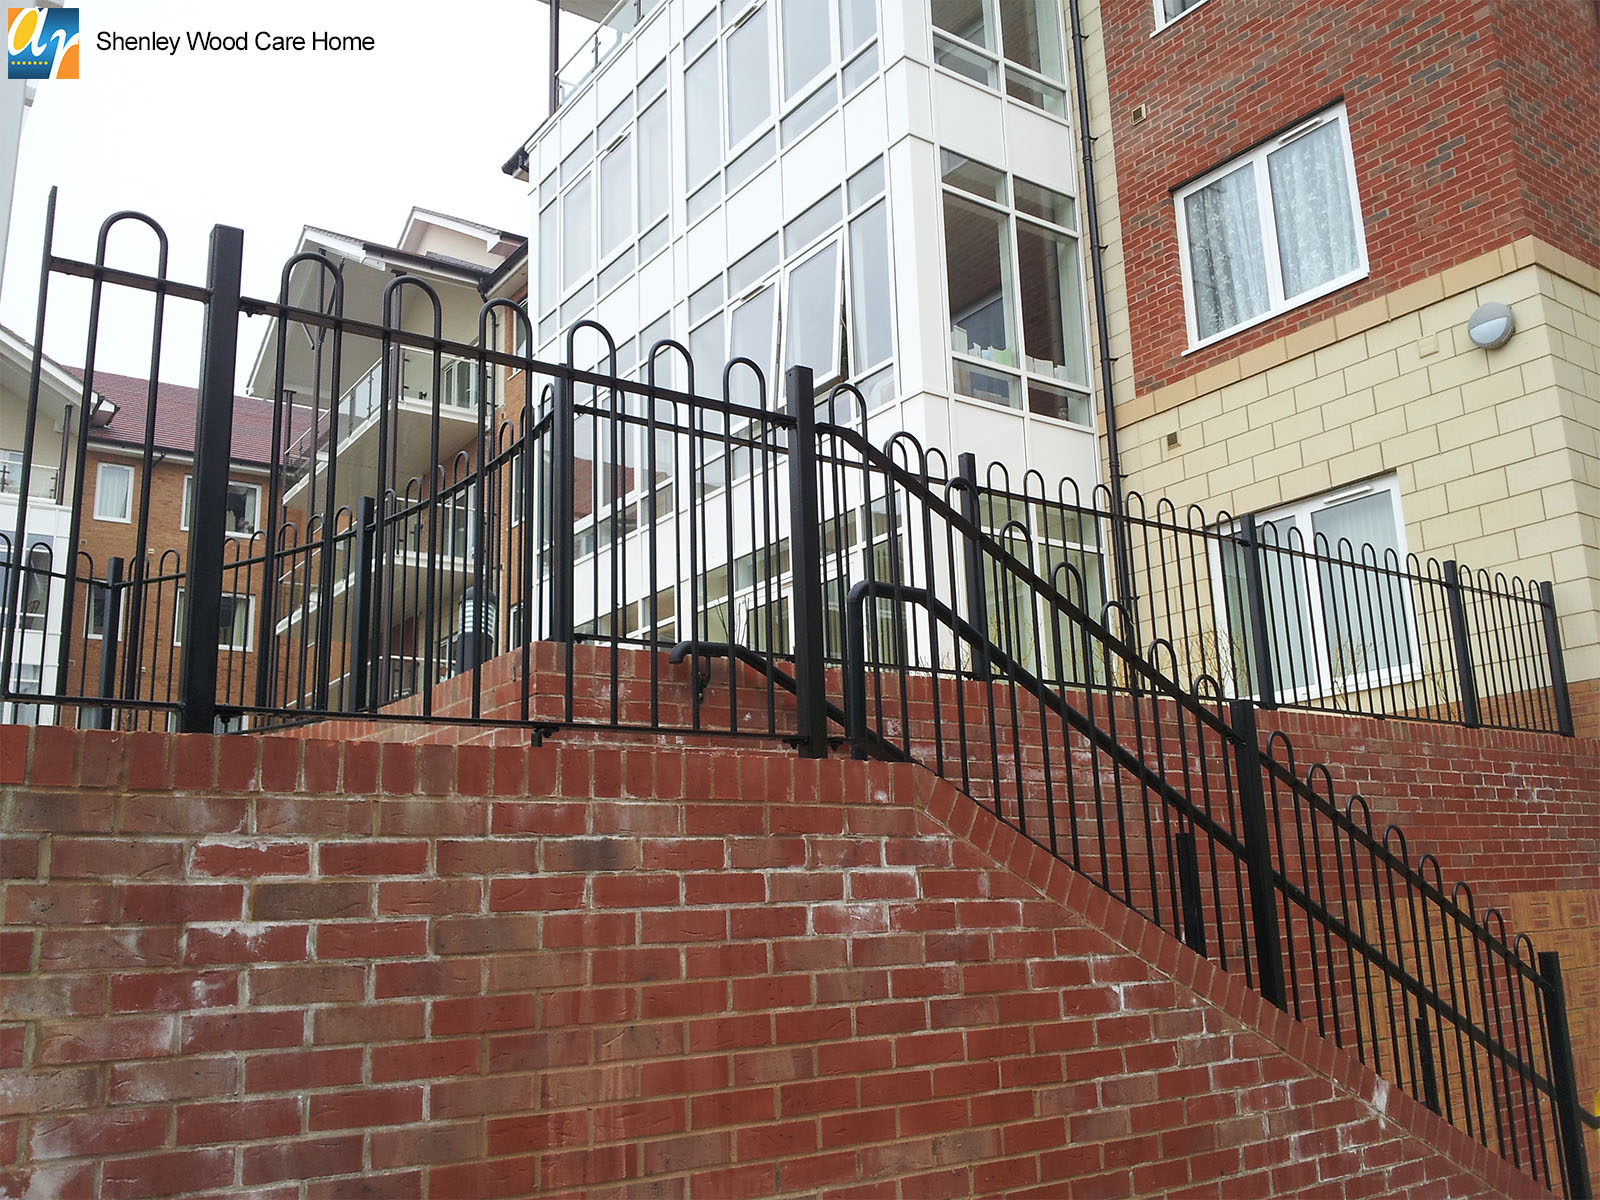 Shenley Wood Care Home standard bow top railings